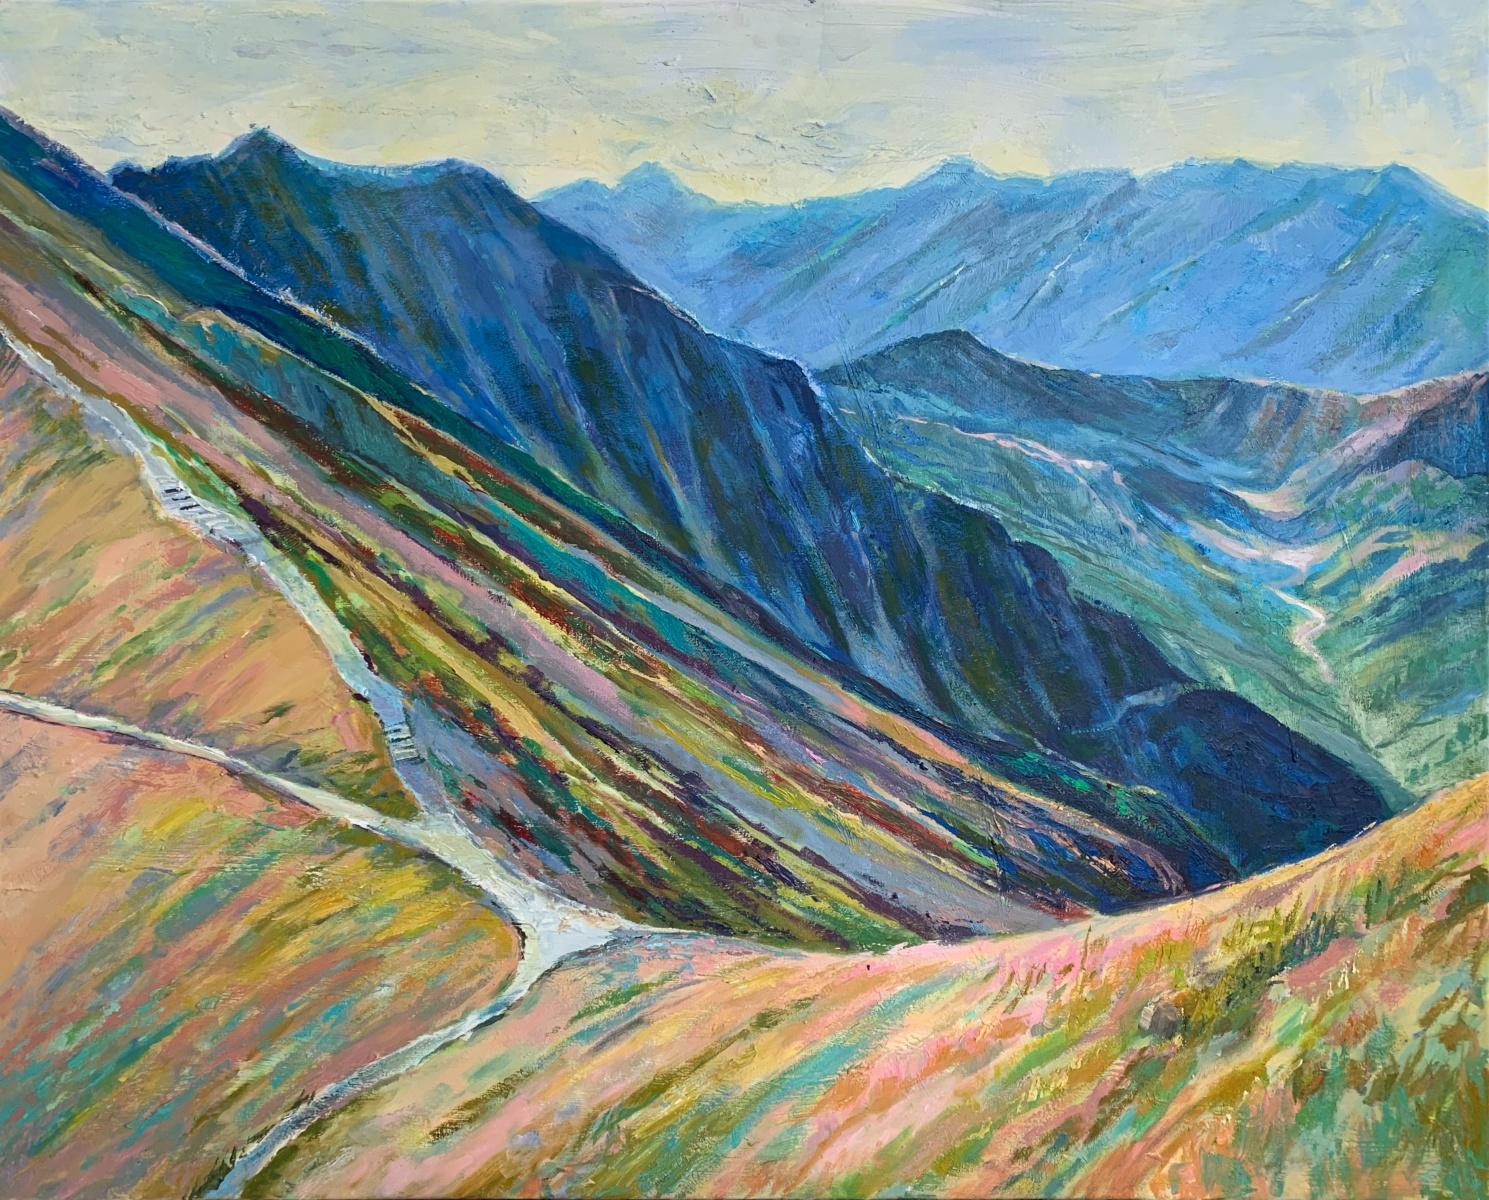 Liliowe Pass - Figurative Oil Painting, Landscape, Mountains, Colorful